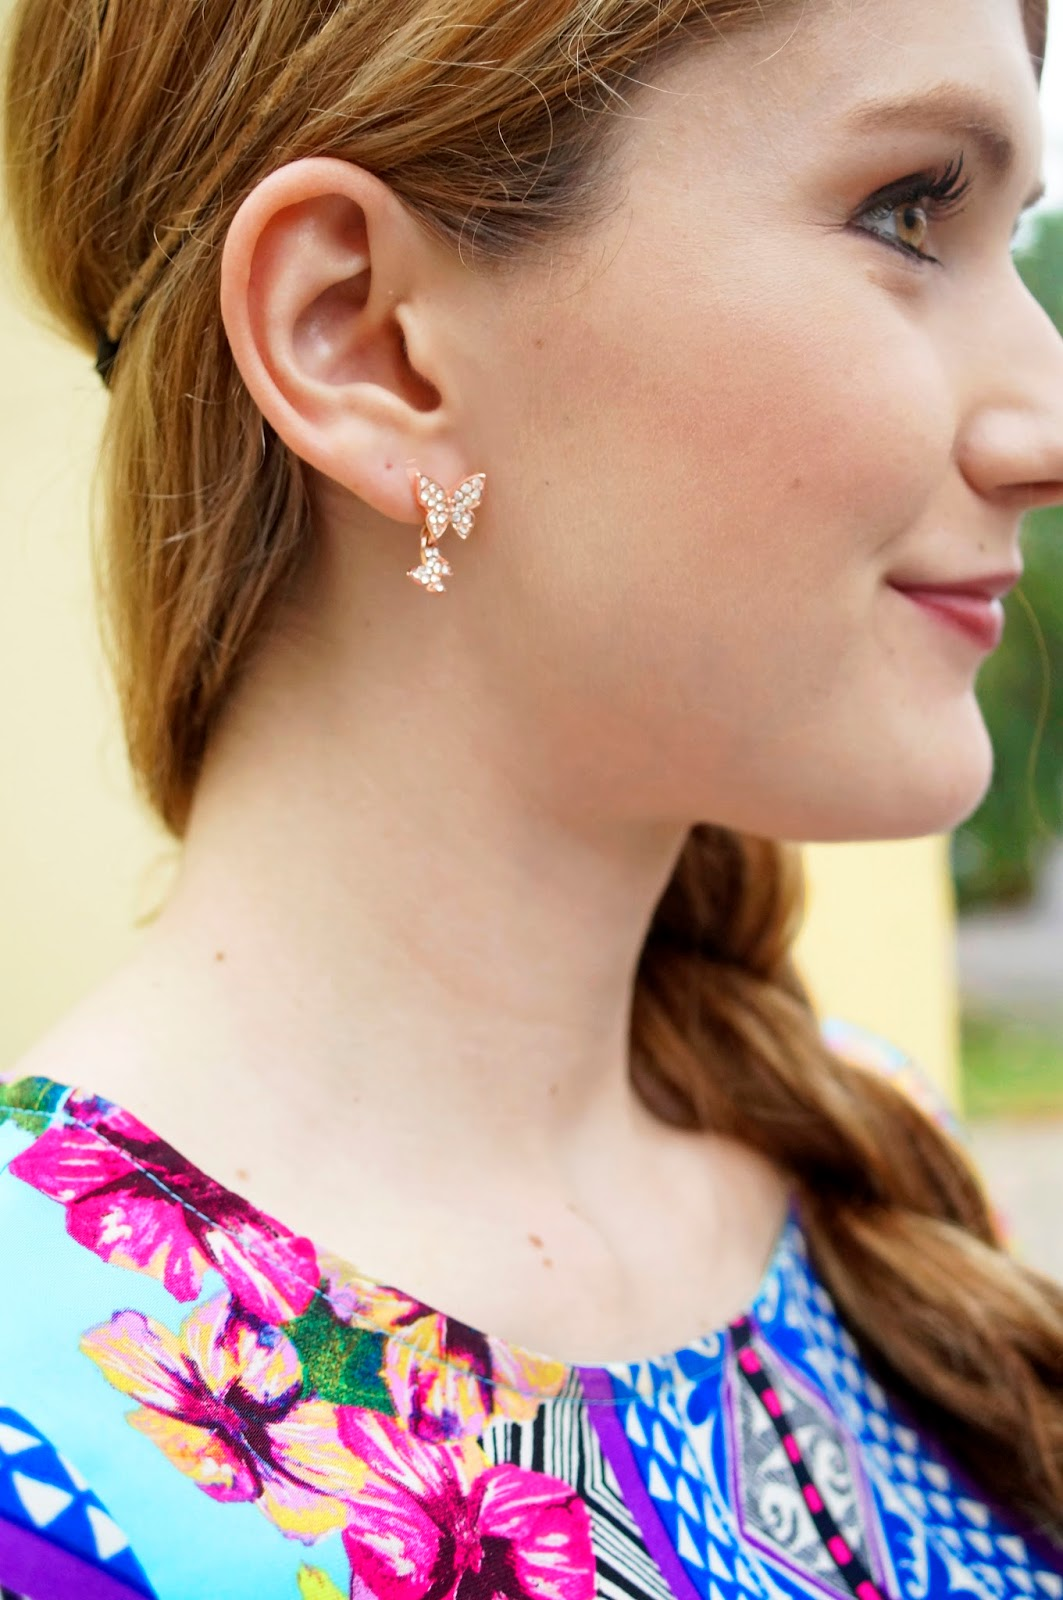 Pretty Butterfly Earrings from the Katy Perry collection at Claire's